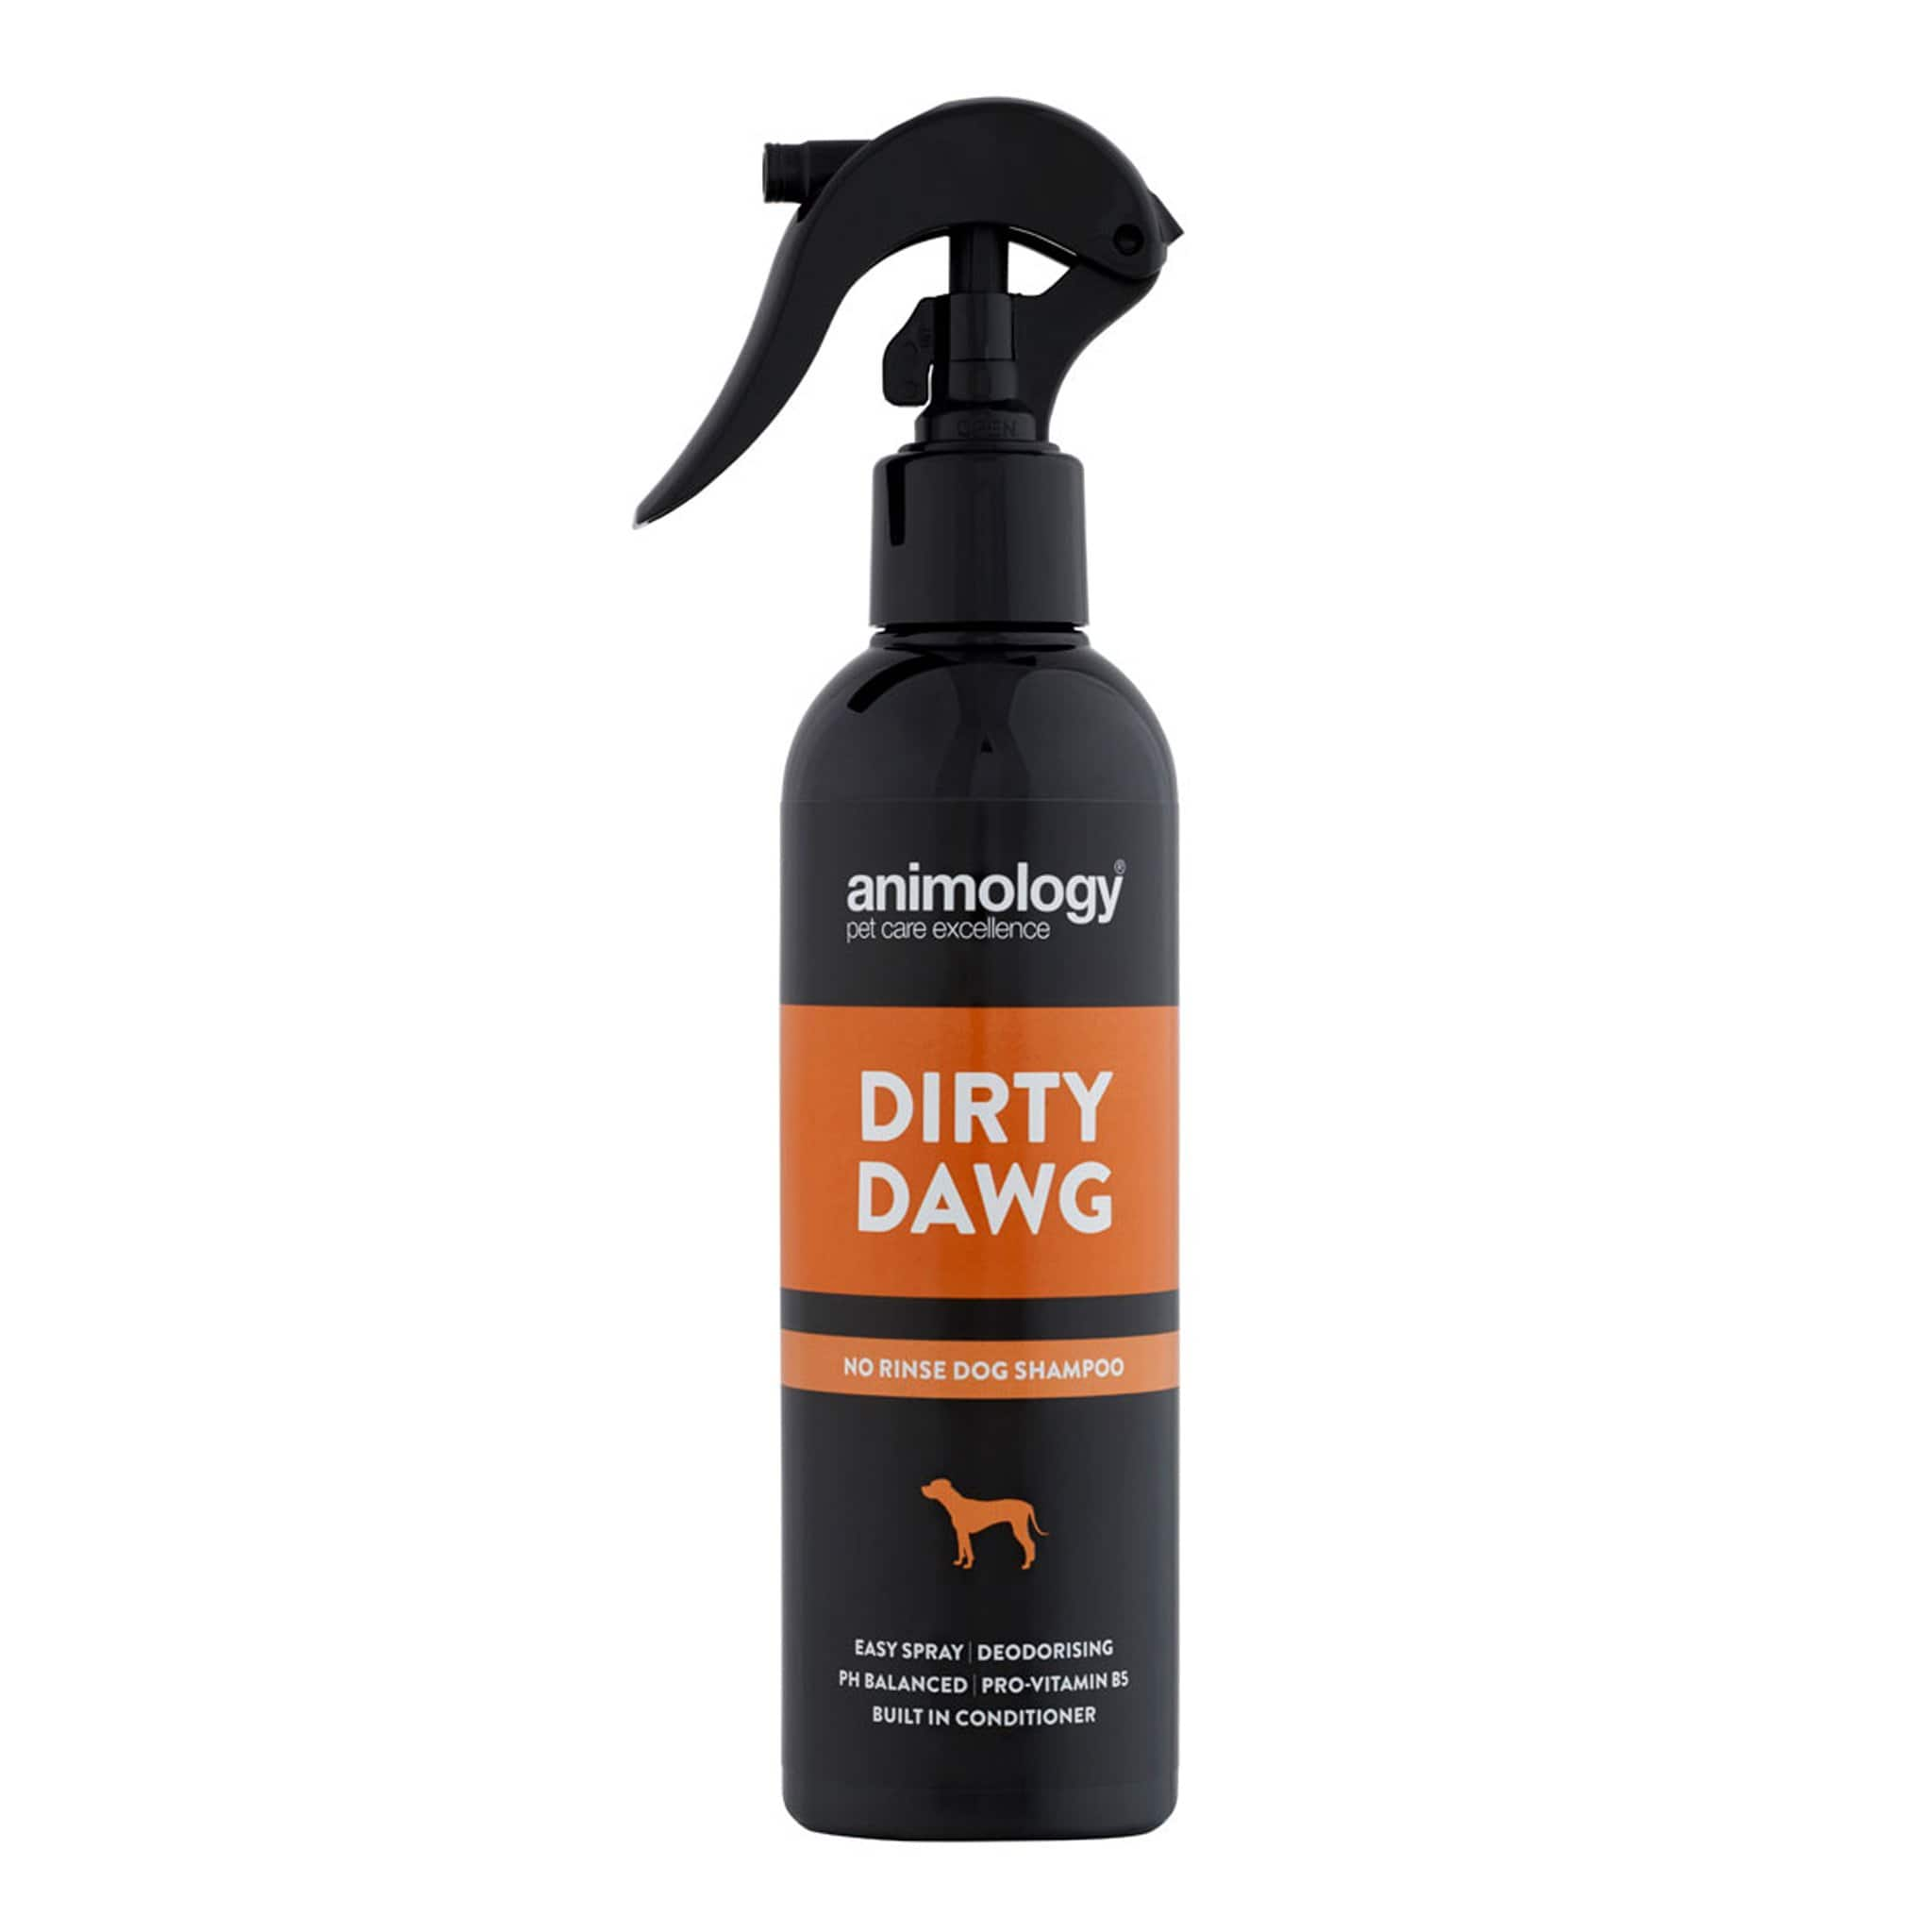 Animology Dirty Dawg No Rinse Dog Shampoo 250ml Spray